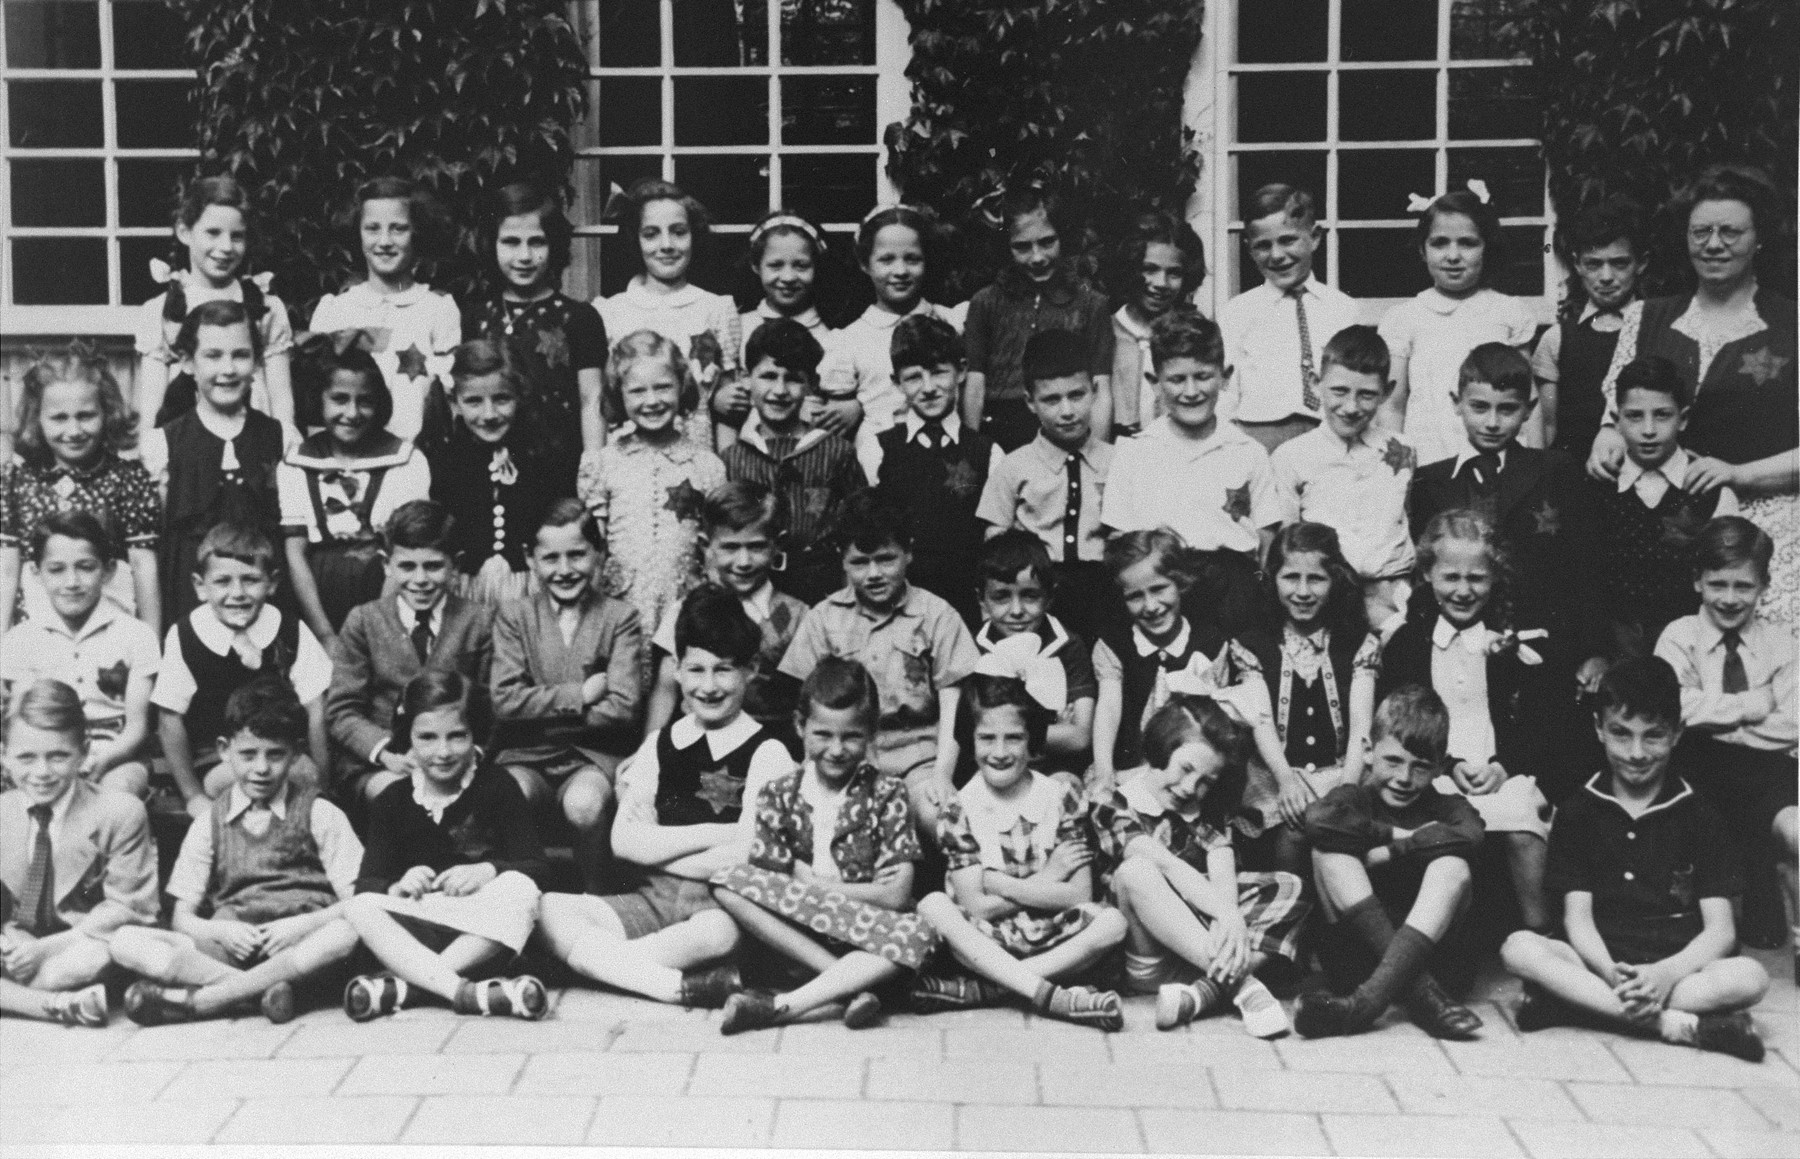 Students of the Jewish school on the Jan van Eyckstraat in Amsterdam.  Most of the children are wearing the Jewish badge.  Pictured second from the right in the second row is Yoka Verdoner, who survived the war in hiding.